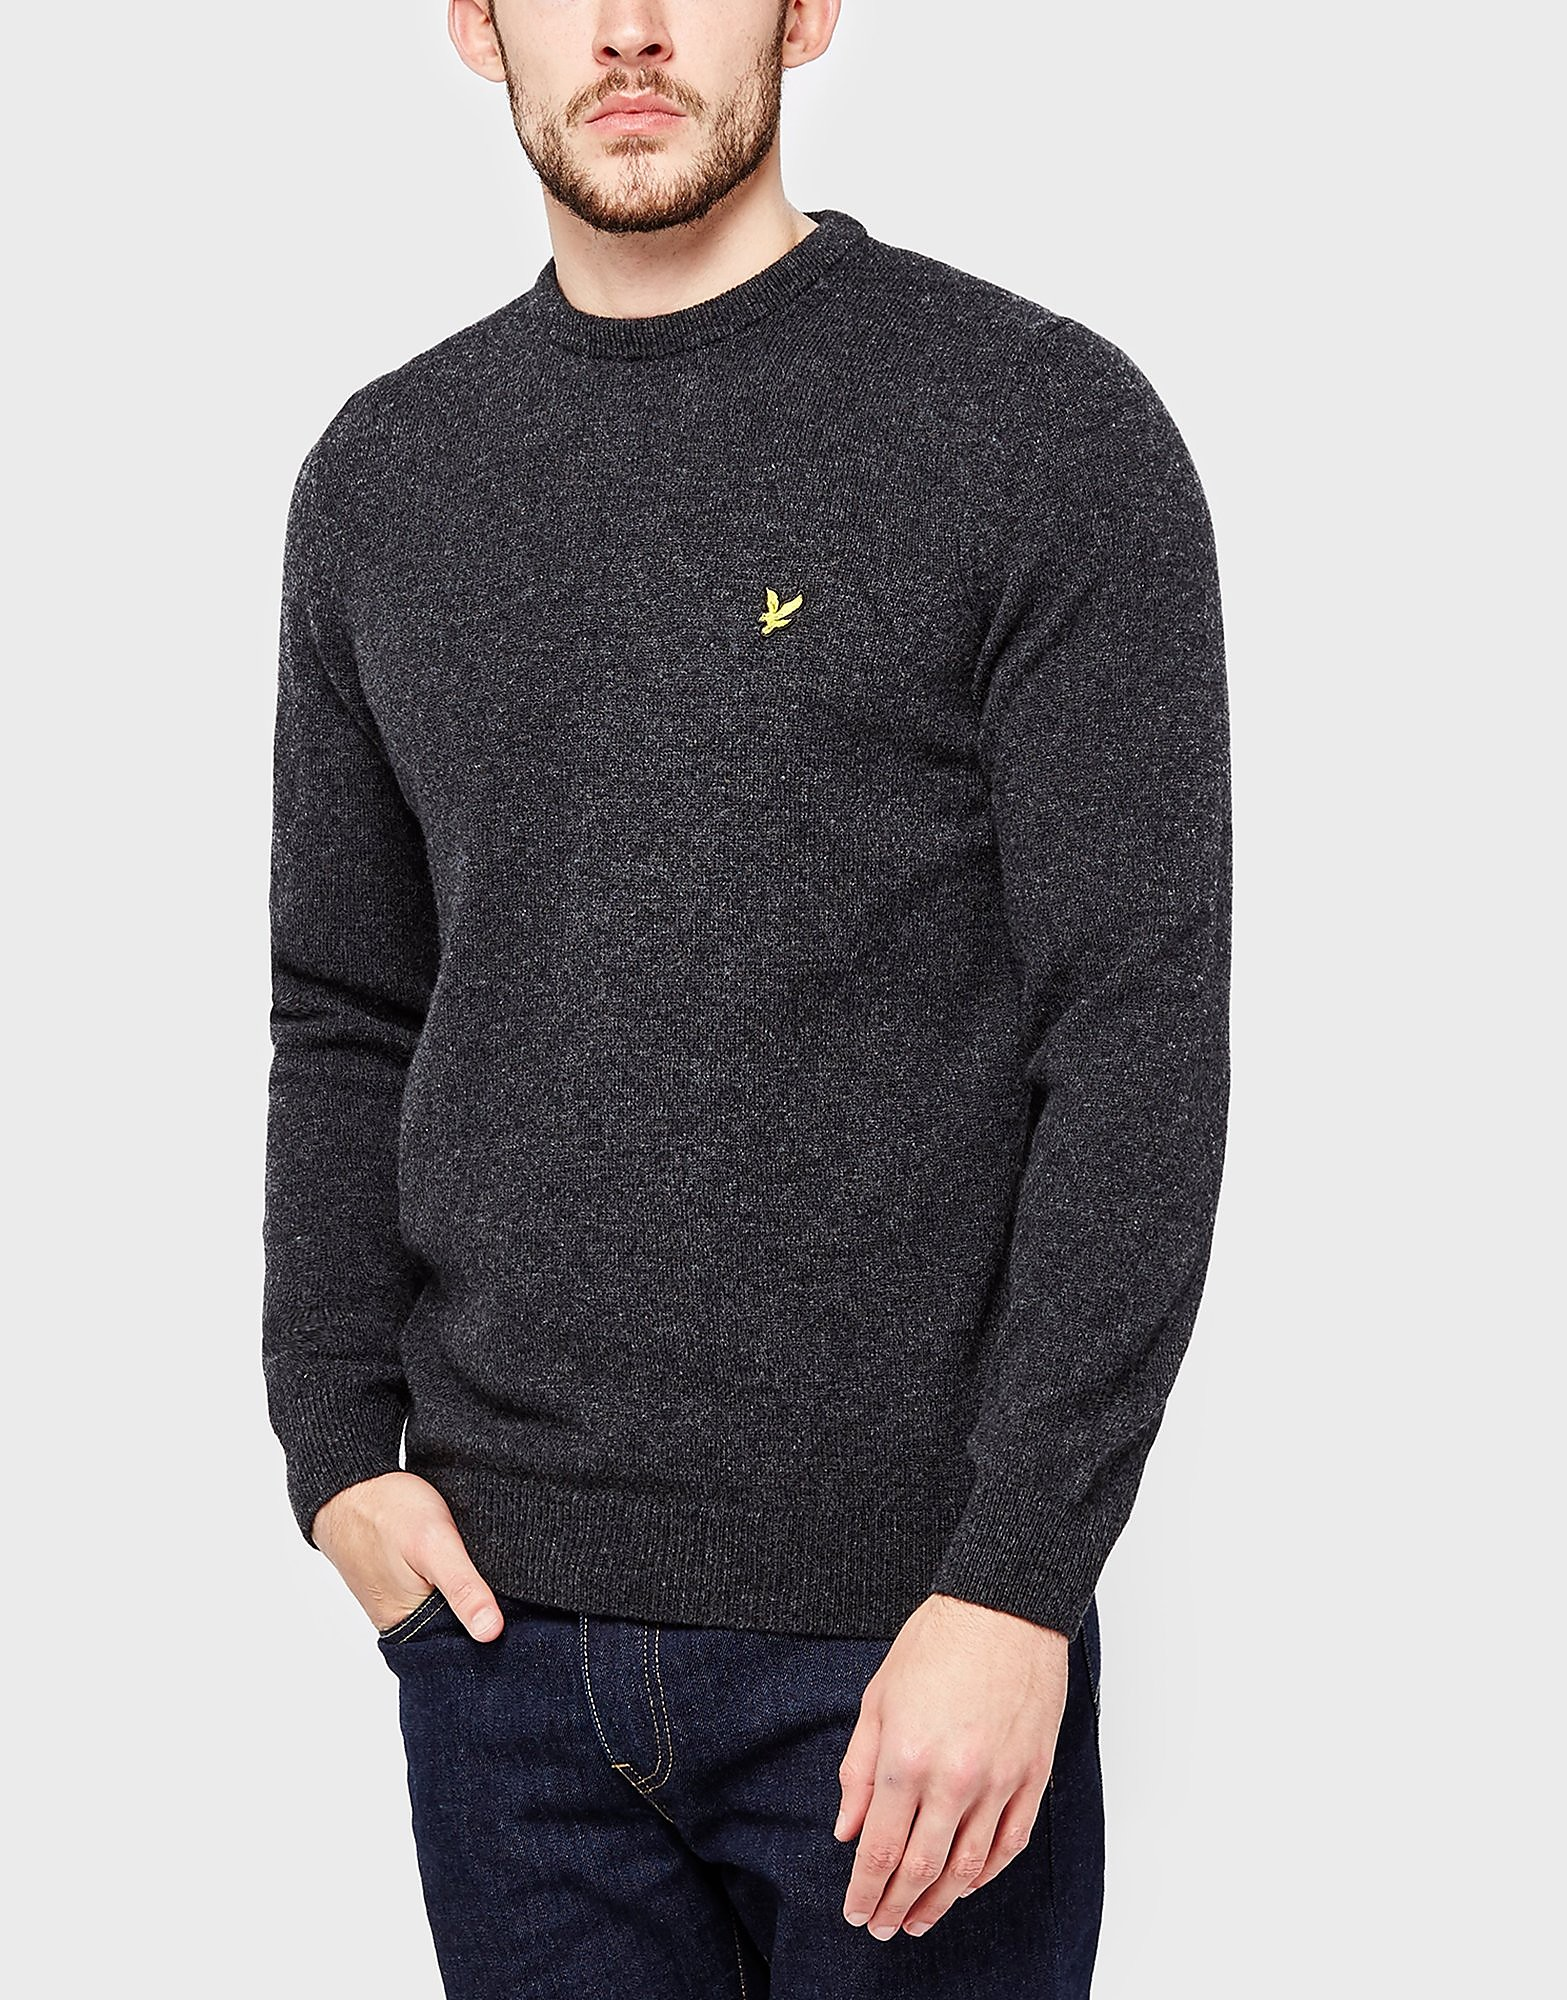 Lyle & Scott Lambswool Crew Knit  Charcoal Charcoal